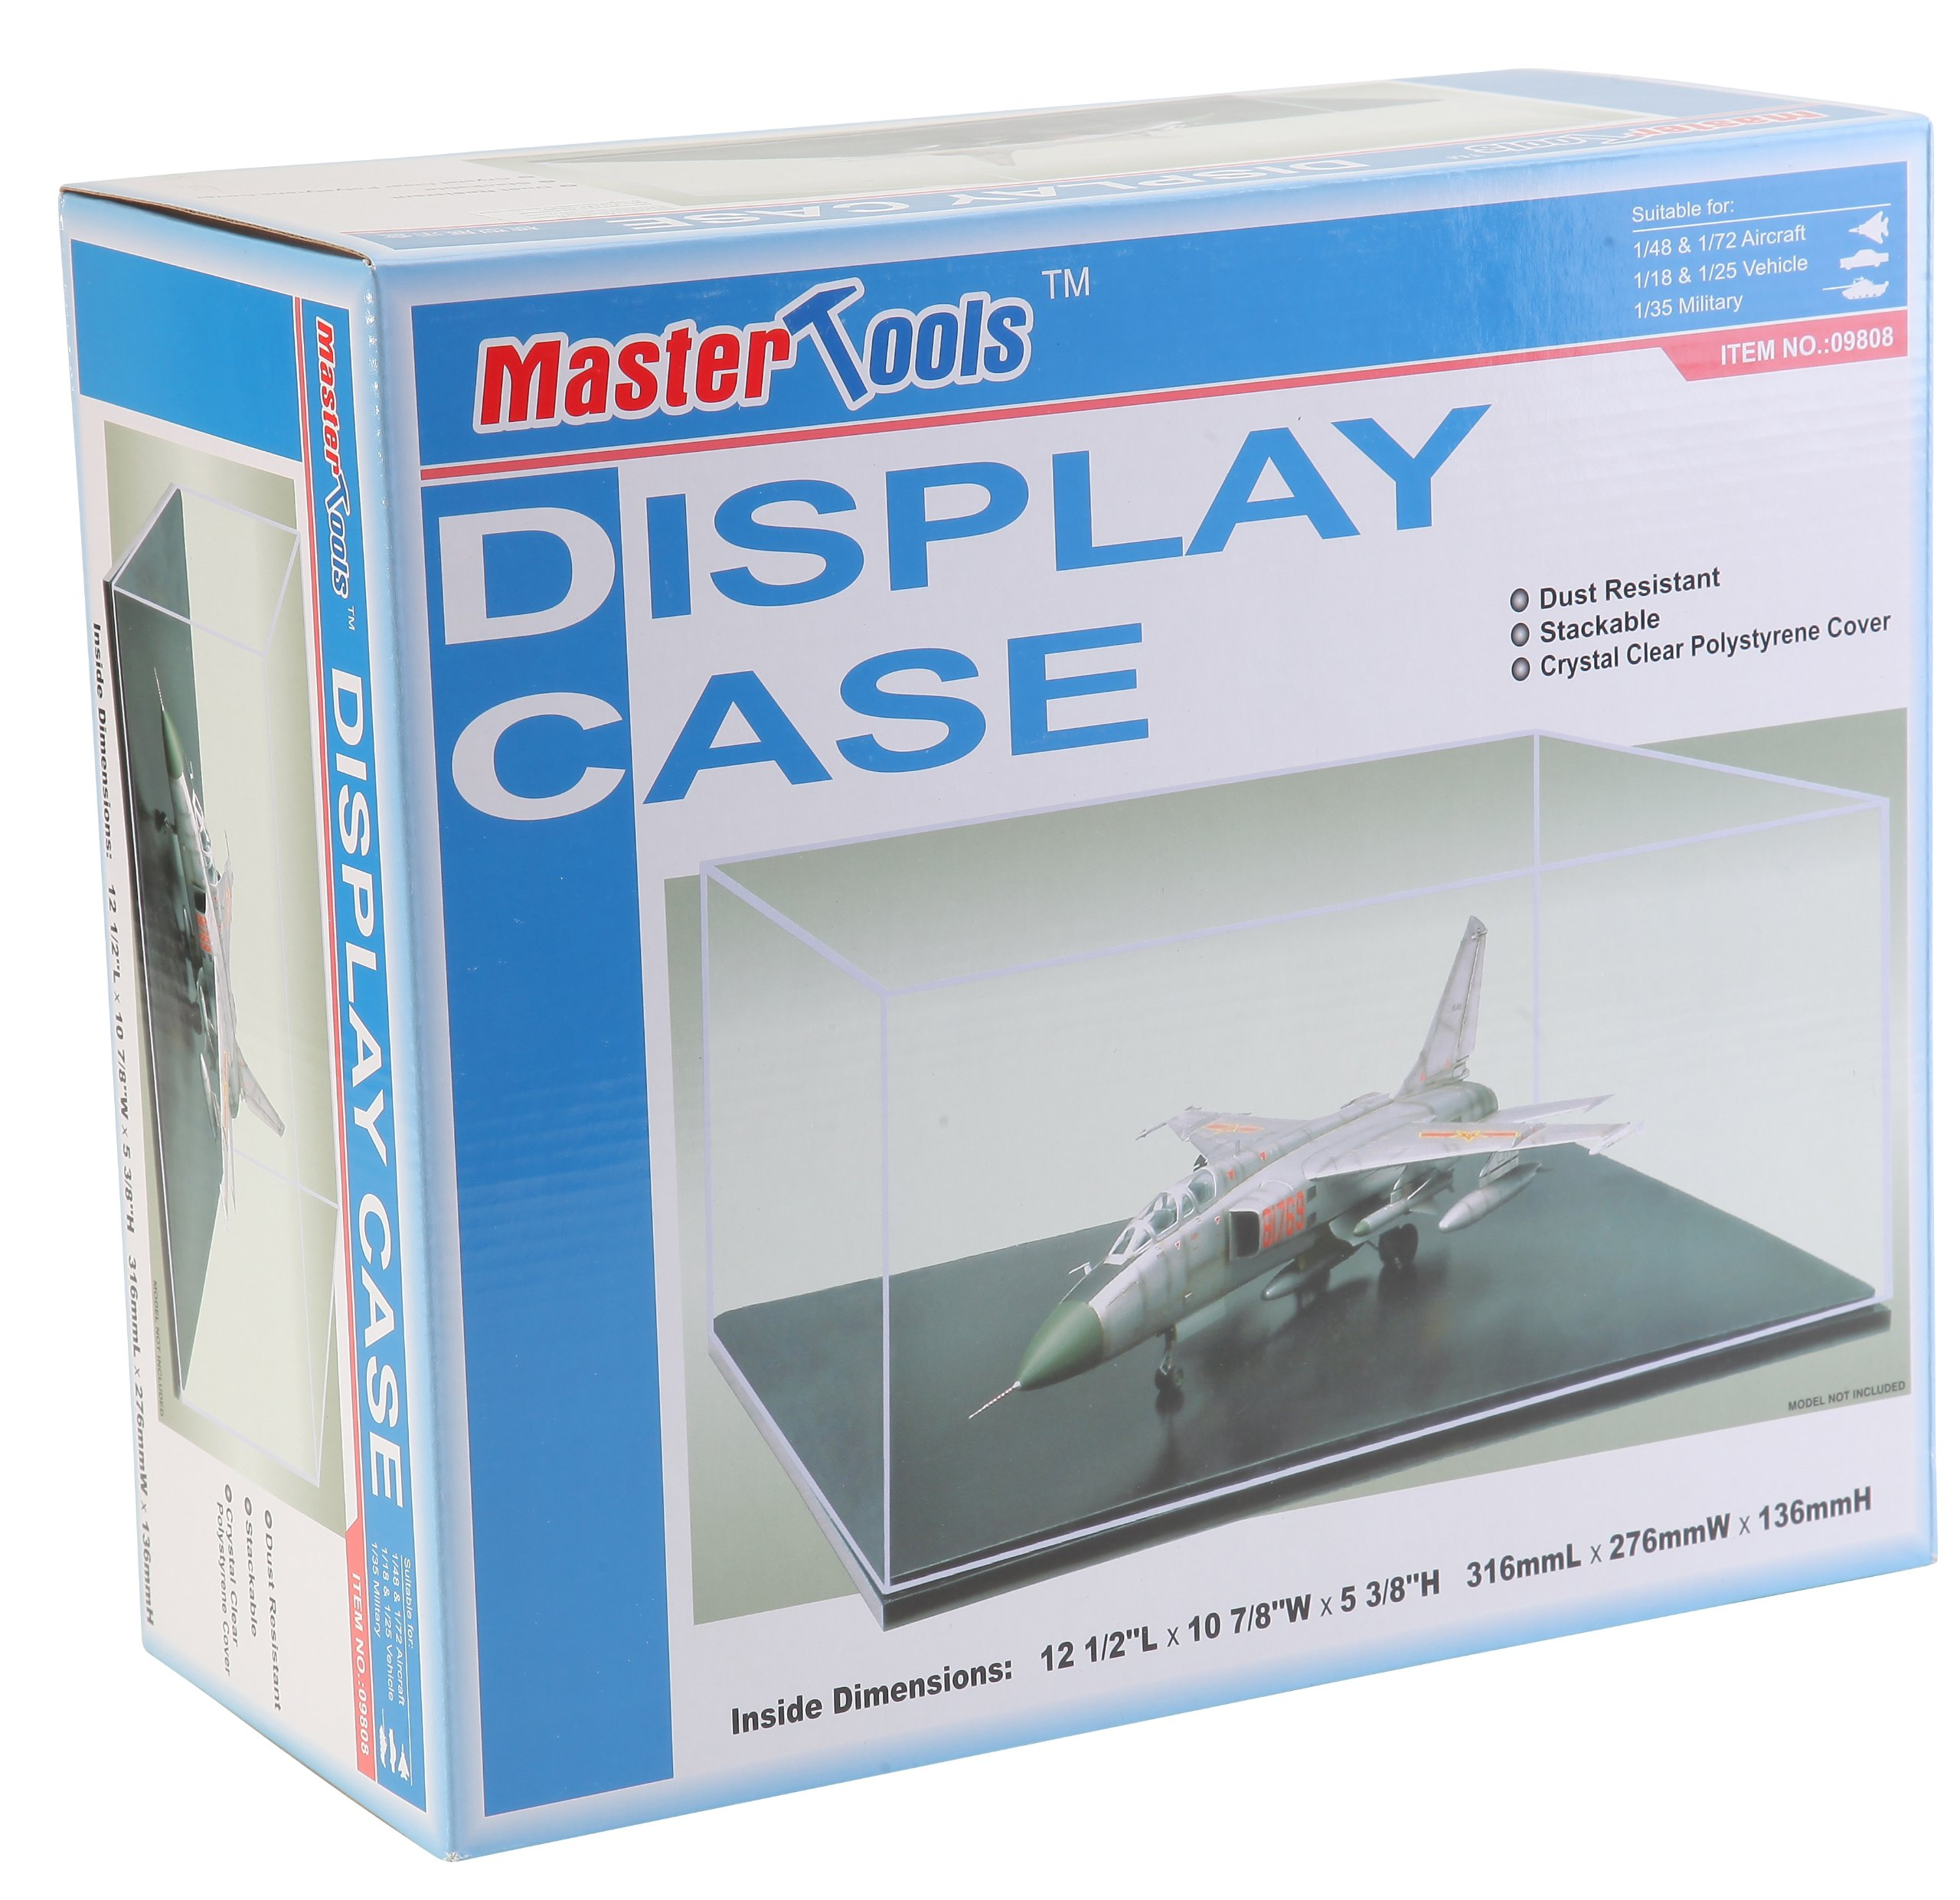 Trumpeter Showcase for 1/18 Autos, 1/48 Planes and 1/35 Black Base Tanks